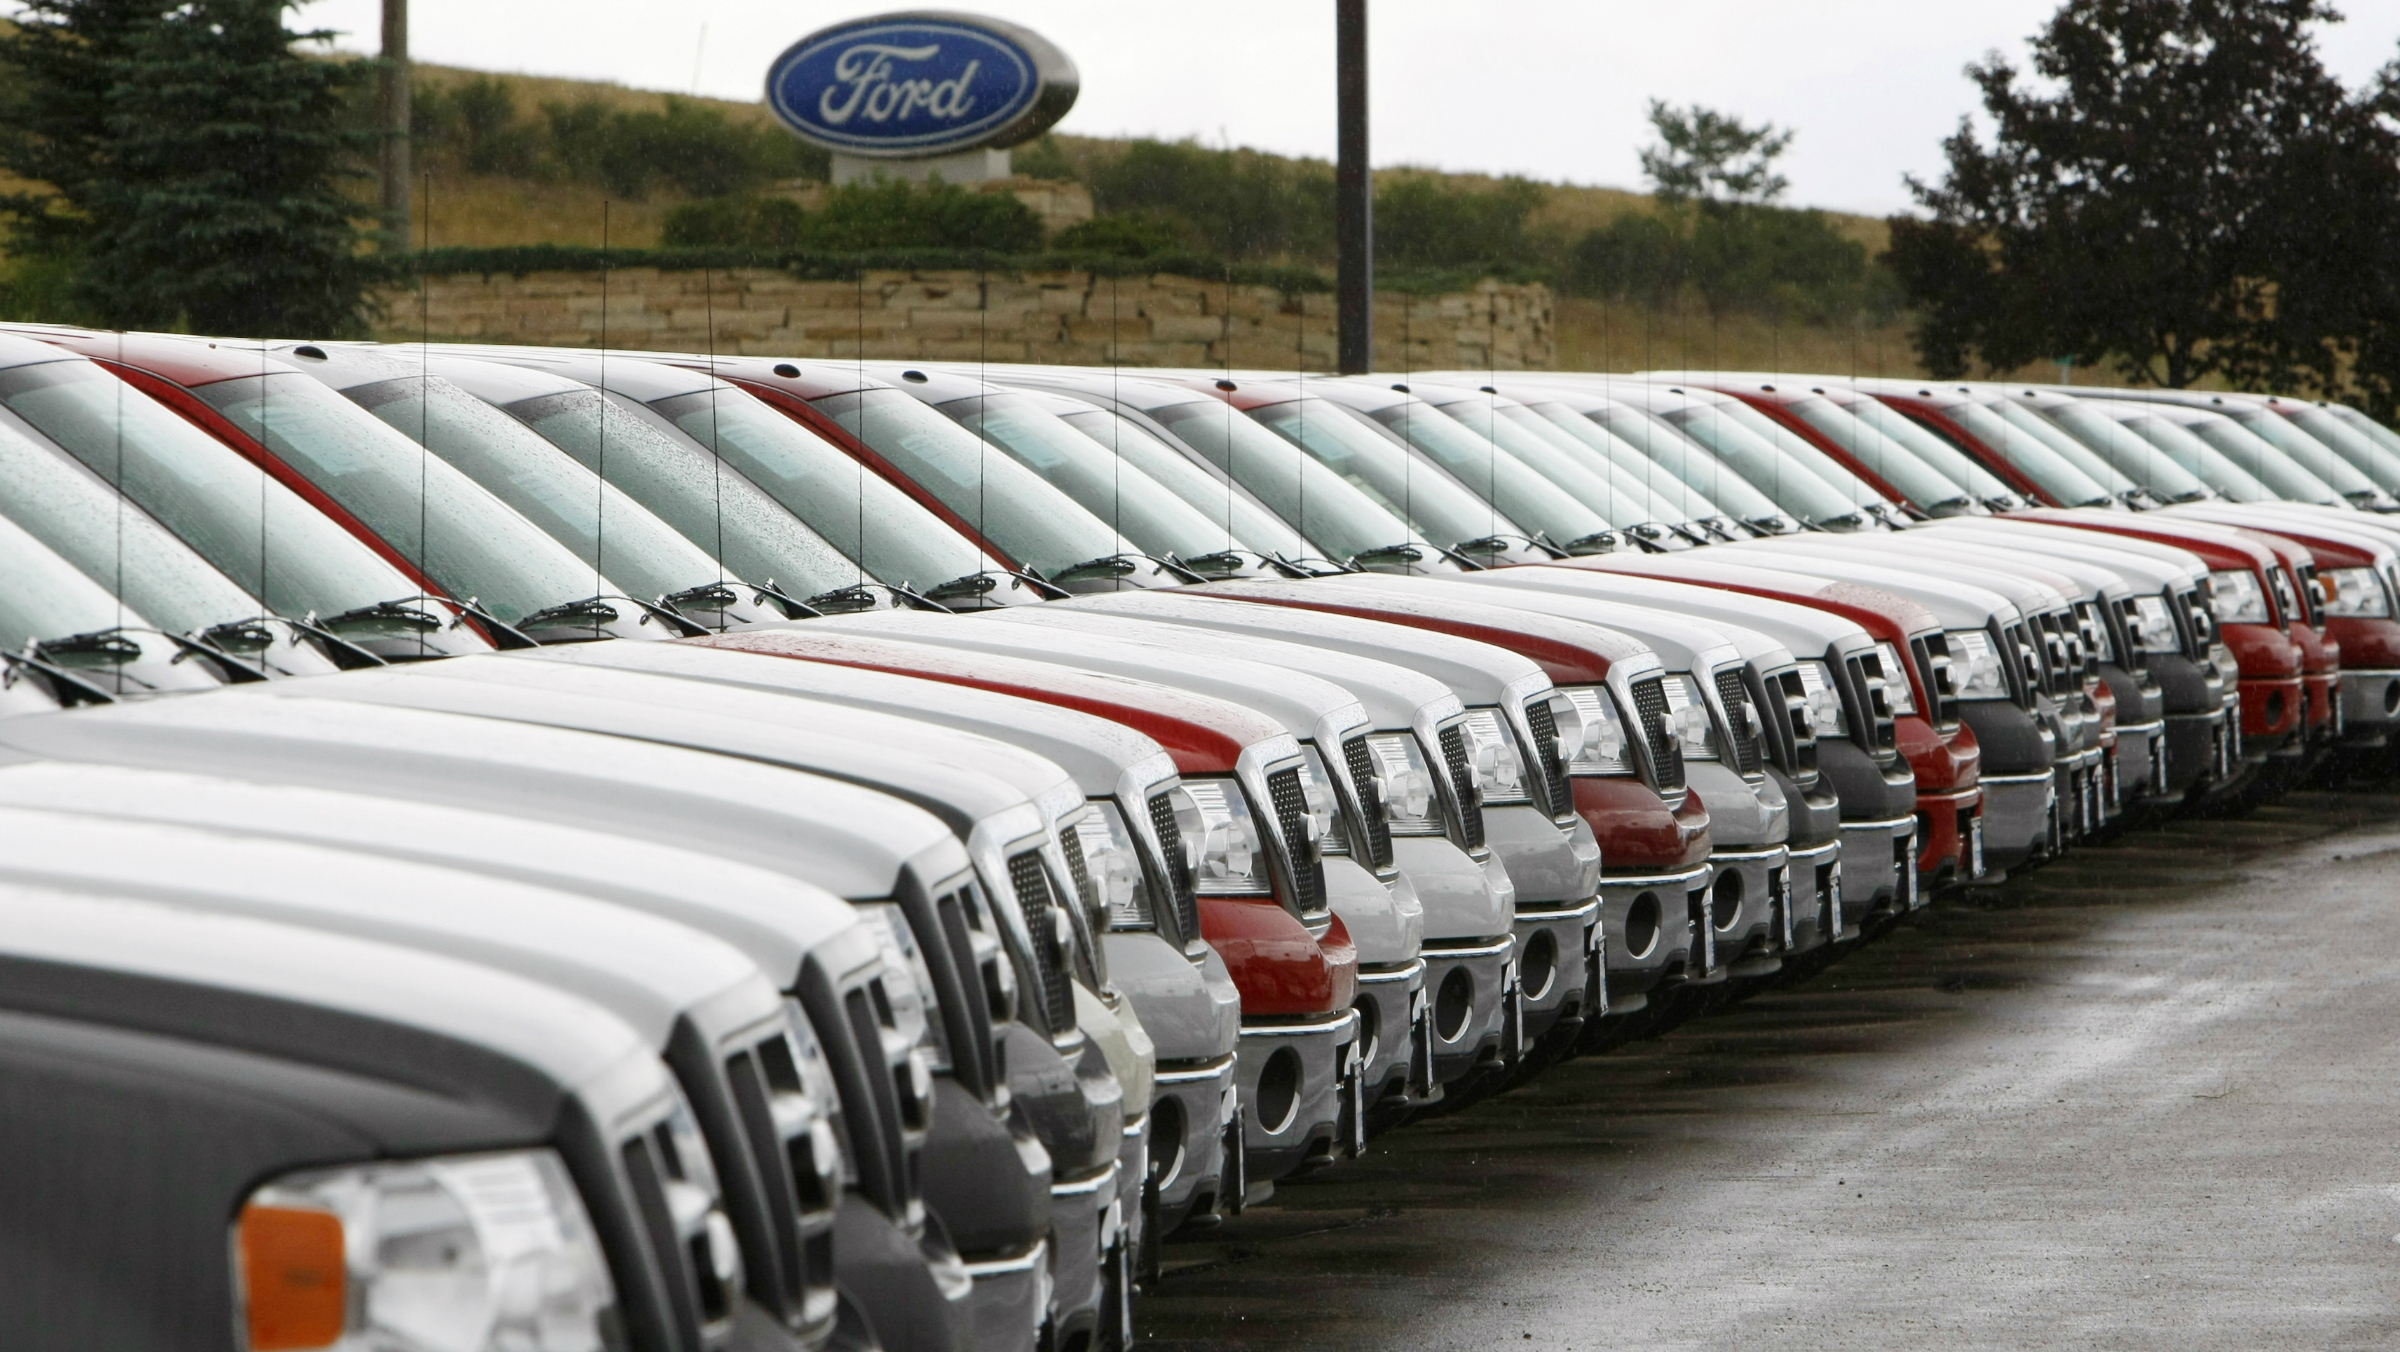 A long line of Ford trucks for sale are seen at a Ford dealership in Broomfield, Colorado July 23, 2008. Ford Motor Co is expected to detail plans on July 24, 2008 for building more fuel-efficient cars in North America and expand its buyout program for hourly workers as it reports a quarterly loss amid a deep industry slump in demand. REUTERS/Rick Wilking